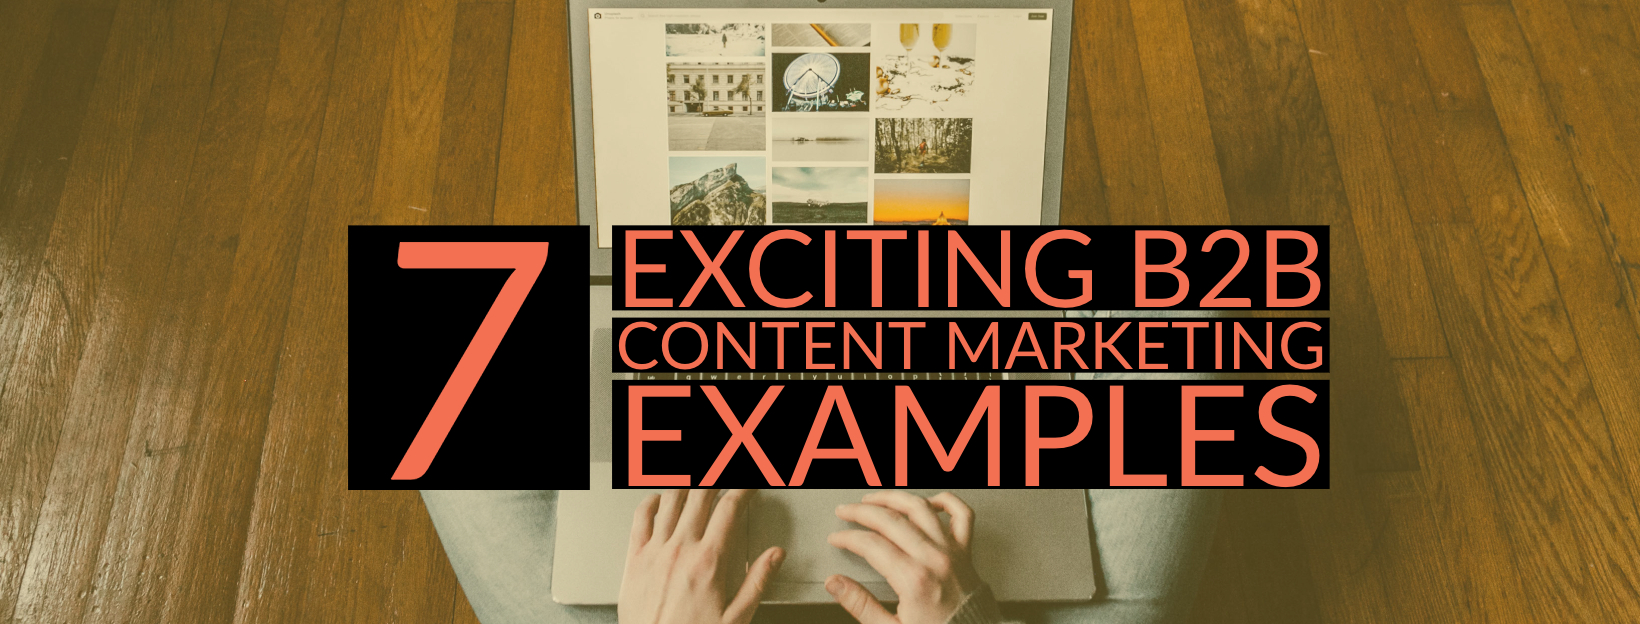 7 Exciting B2B Content Marketing Examples